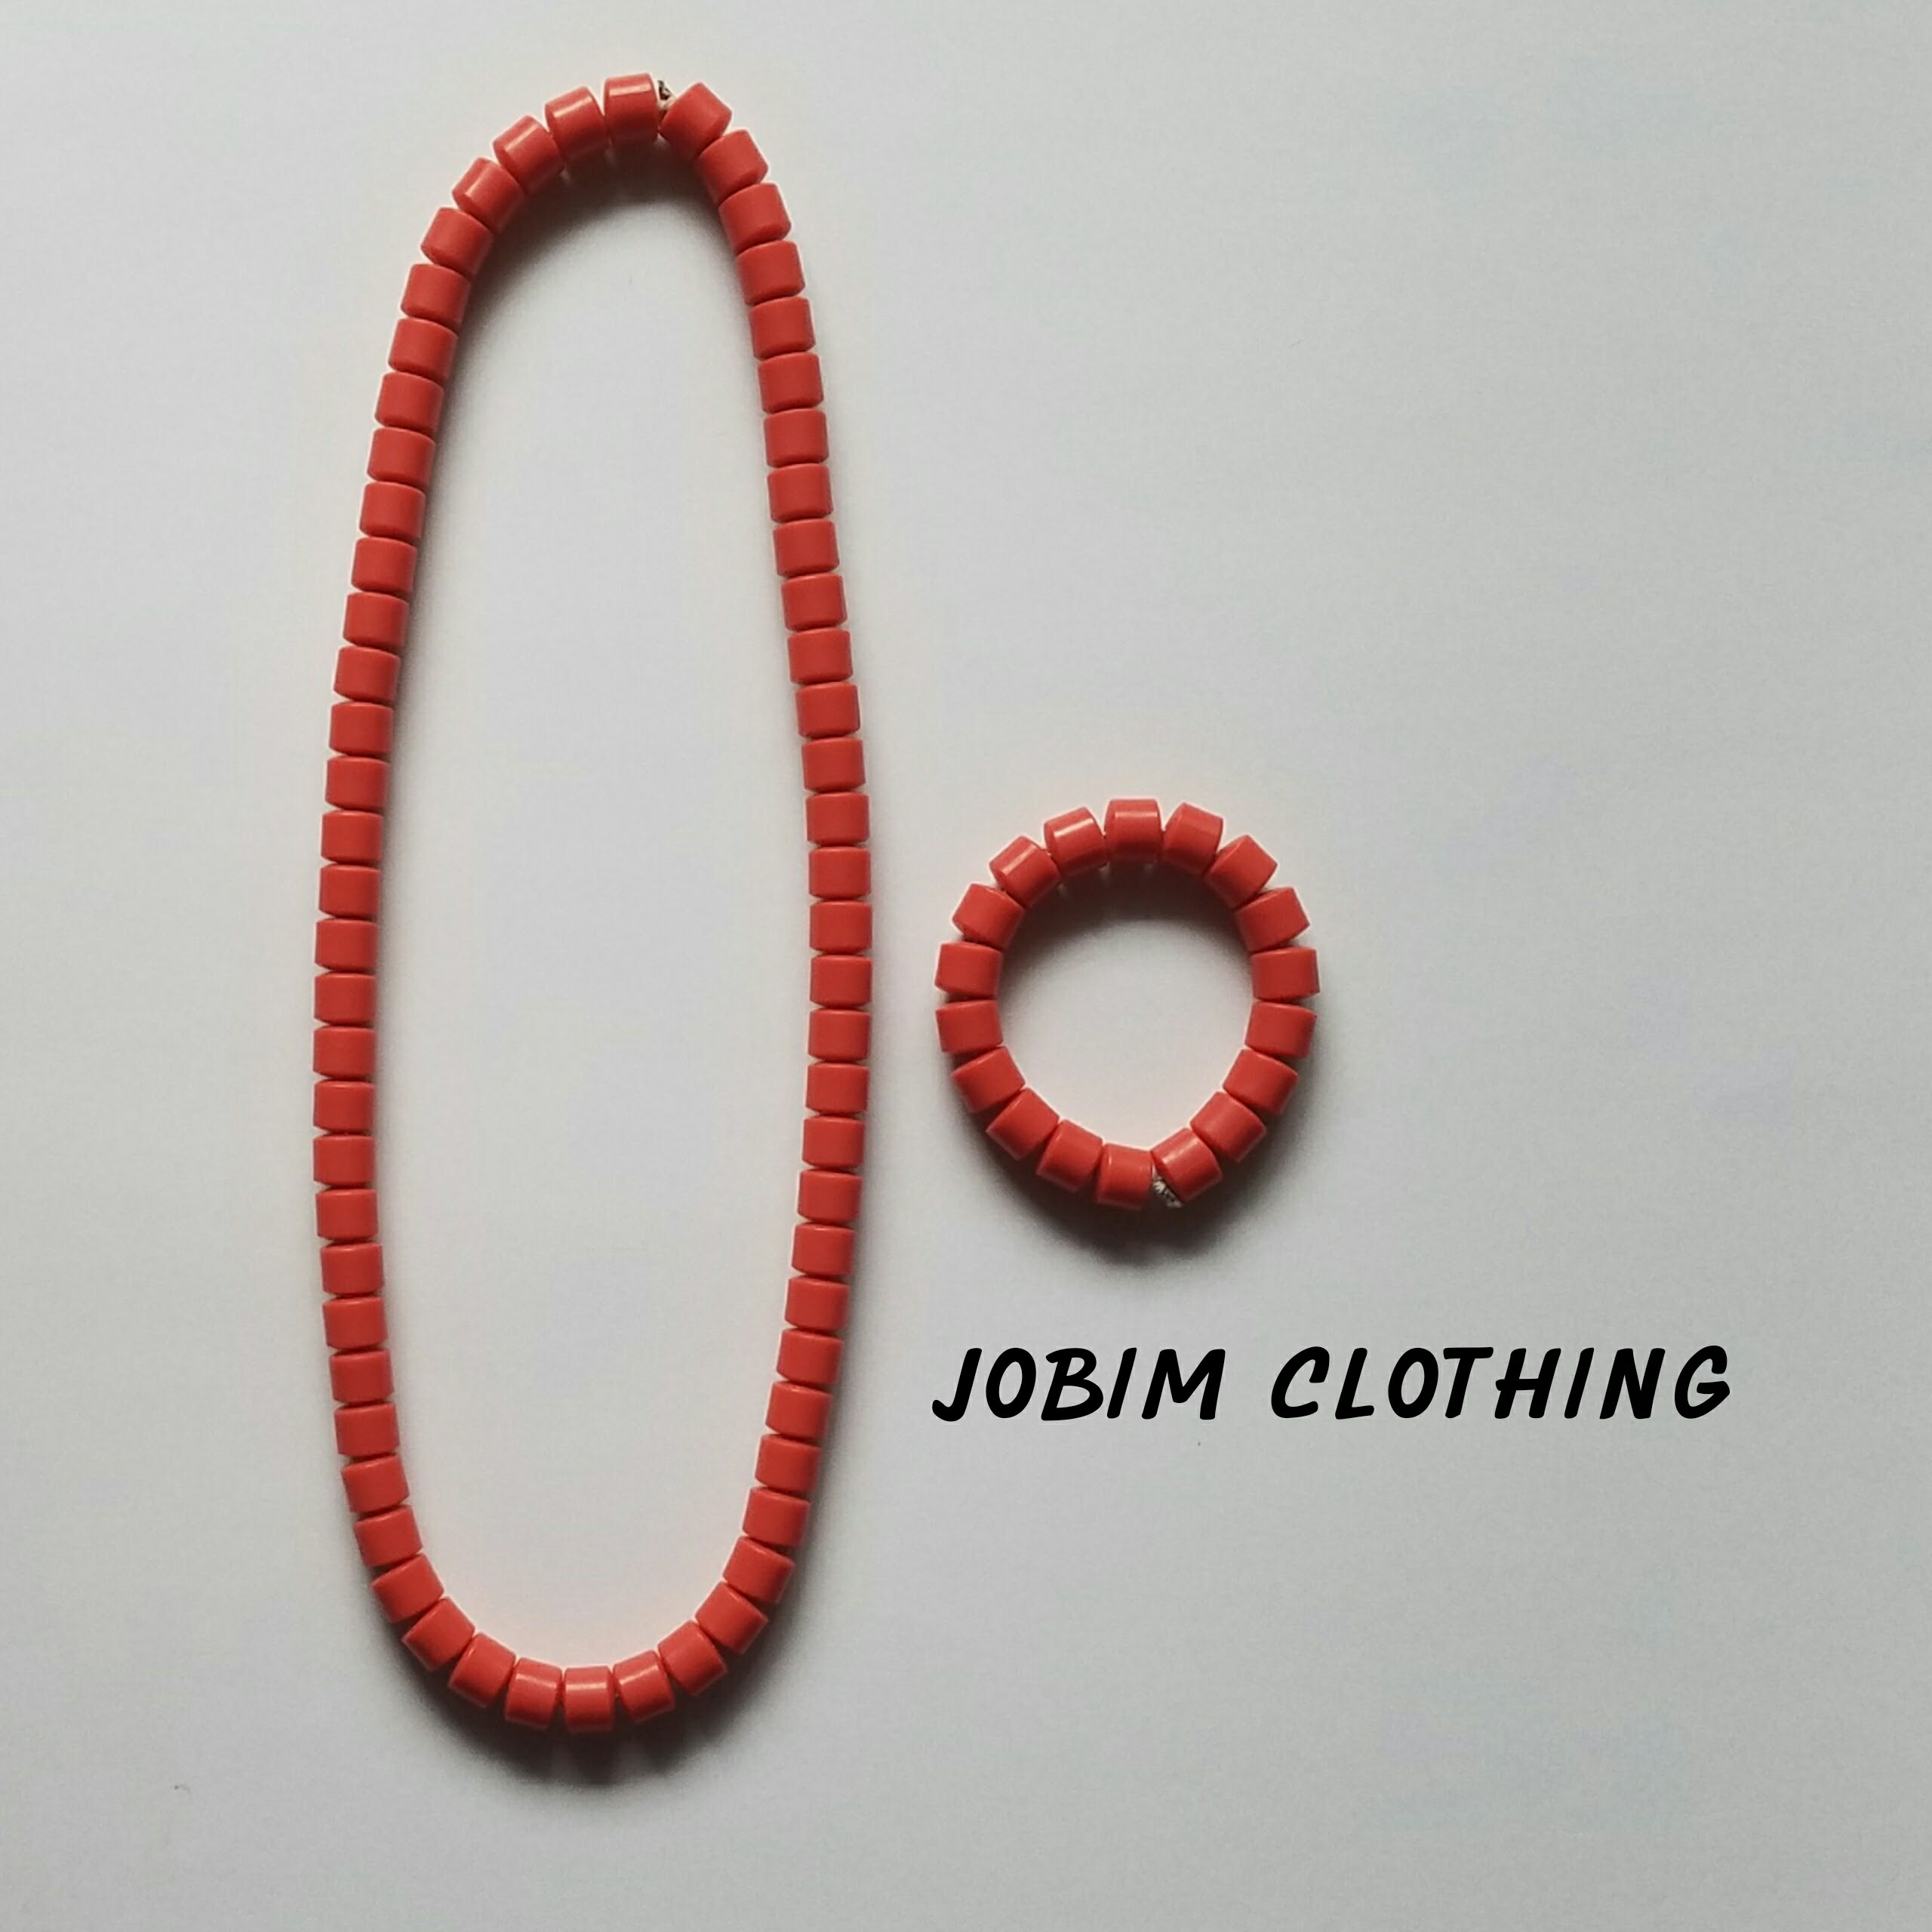 Jobim Clothing Jewelry Set 202